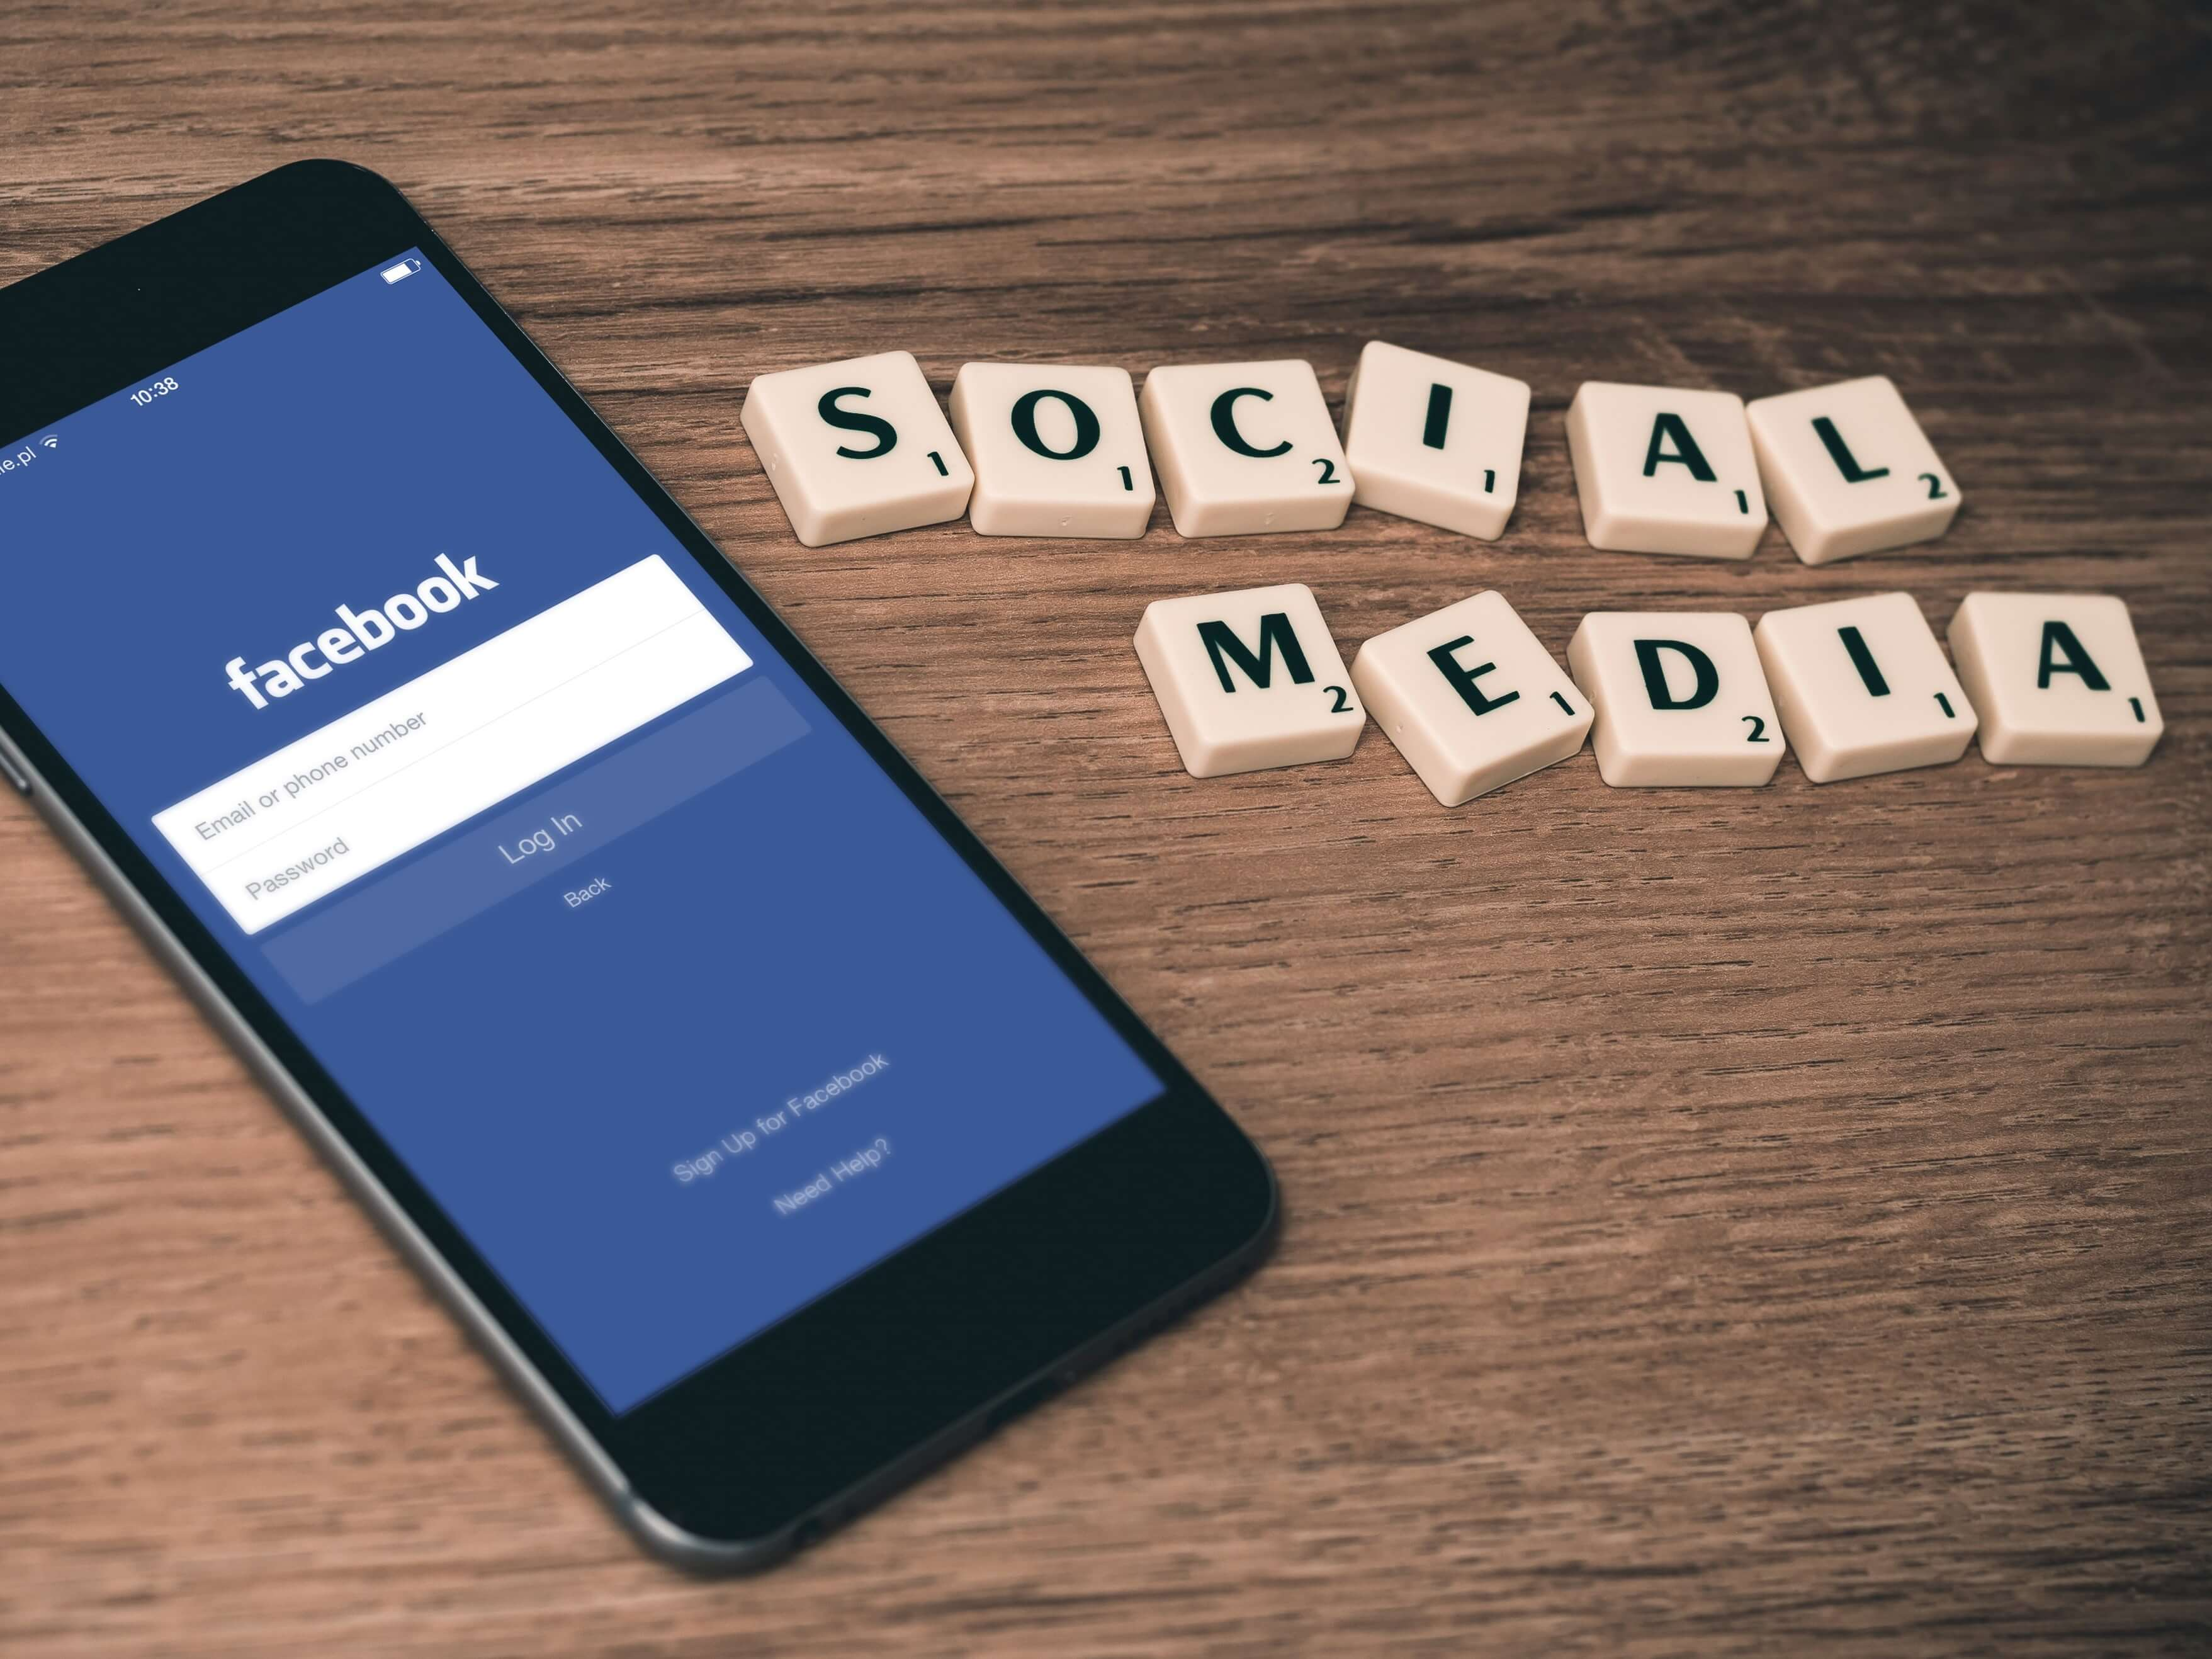 Social marketing is the new sexy. Image Credit: William Iven/Unsplash